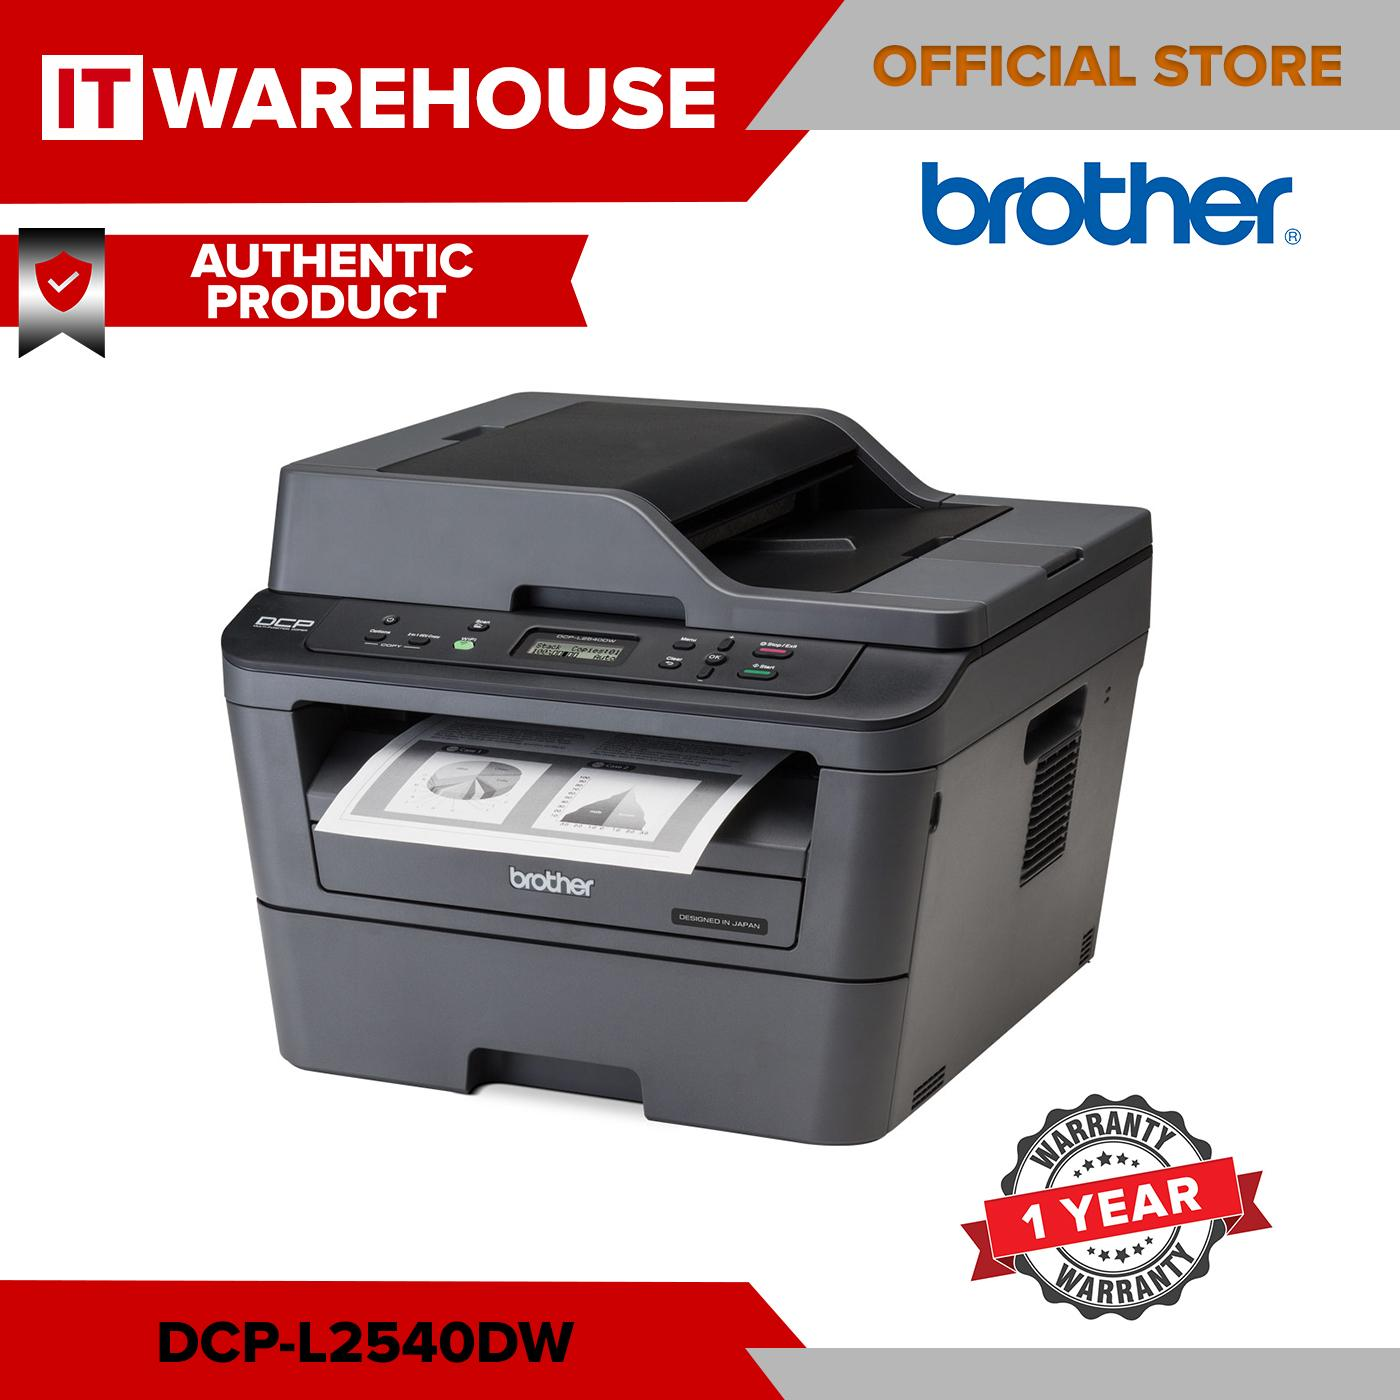 Brother DCP L2540DW 3 in 1 Monochrome Laser Printer with 2 sided Printing  and Wireless Networking Brother DCP-L2540DW